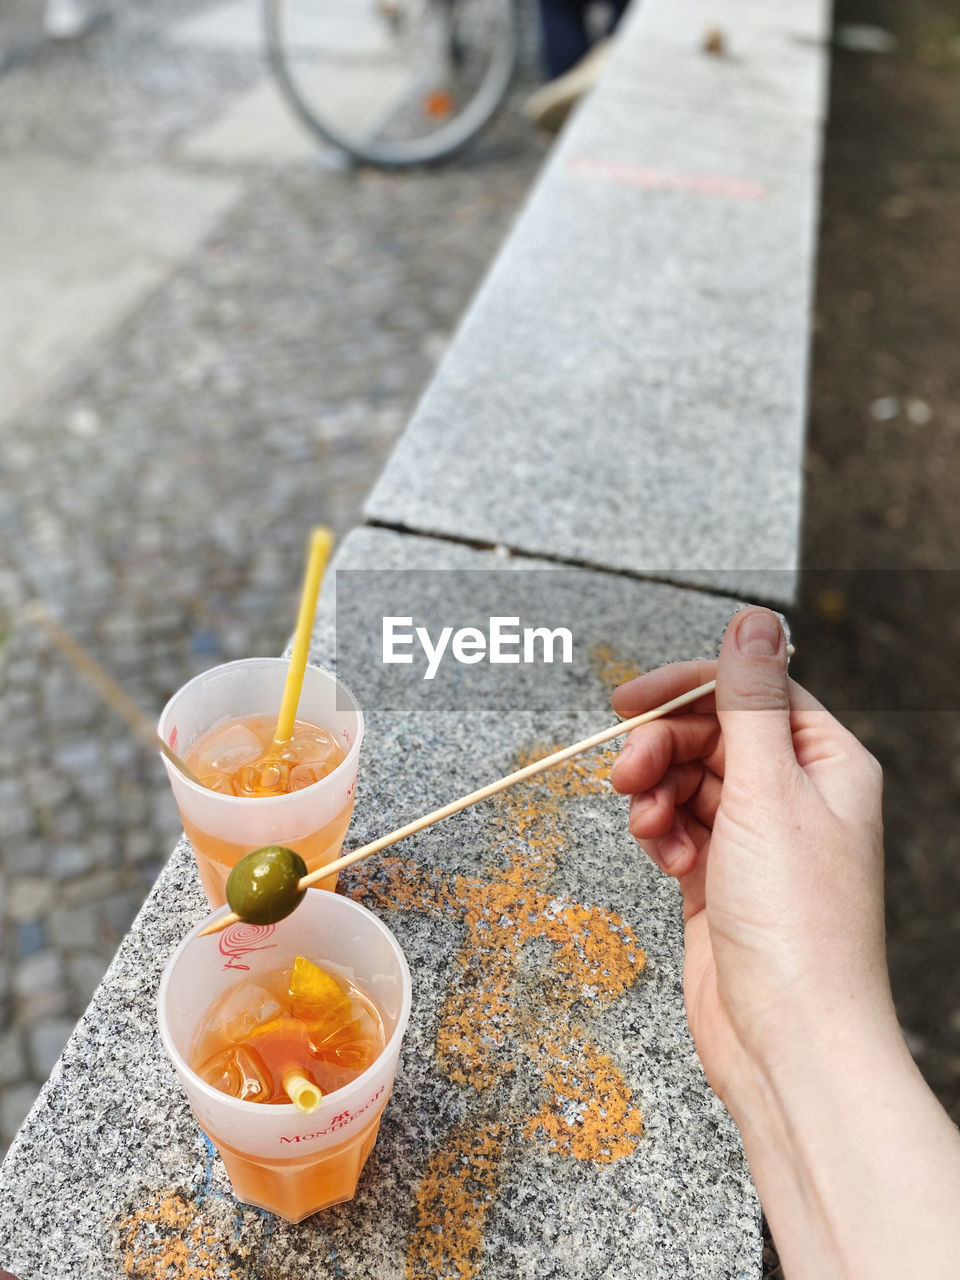 HIGH ANGLE VIEW OF PERSON HOLDING DRINK